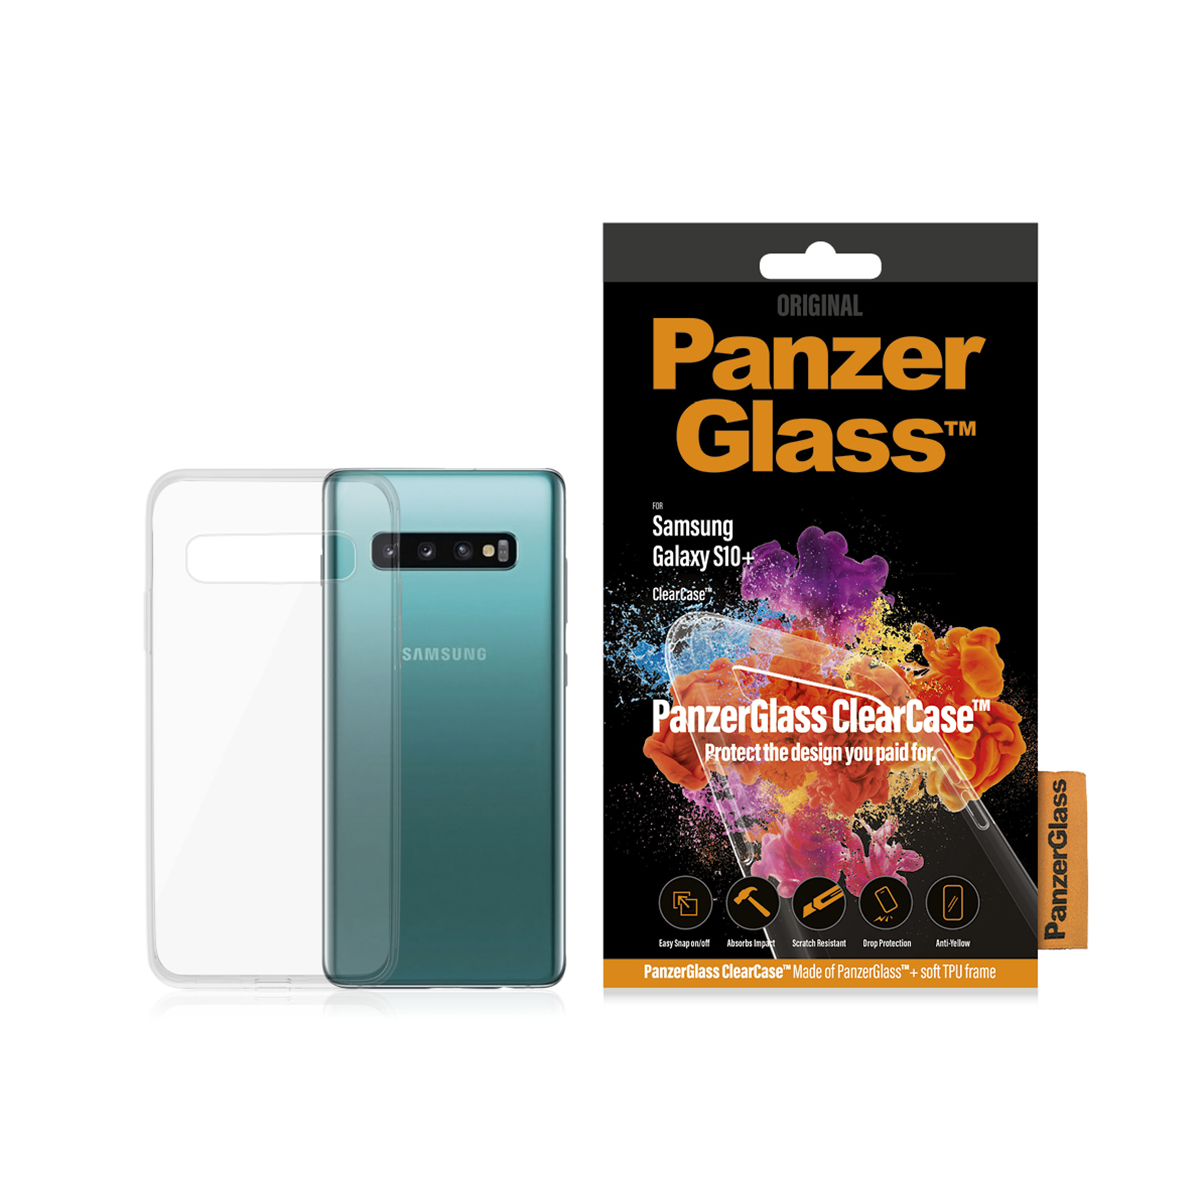 0196_Glass_Phone_Package_1200x1200px